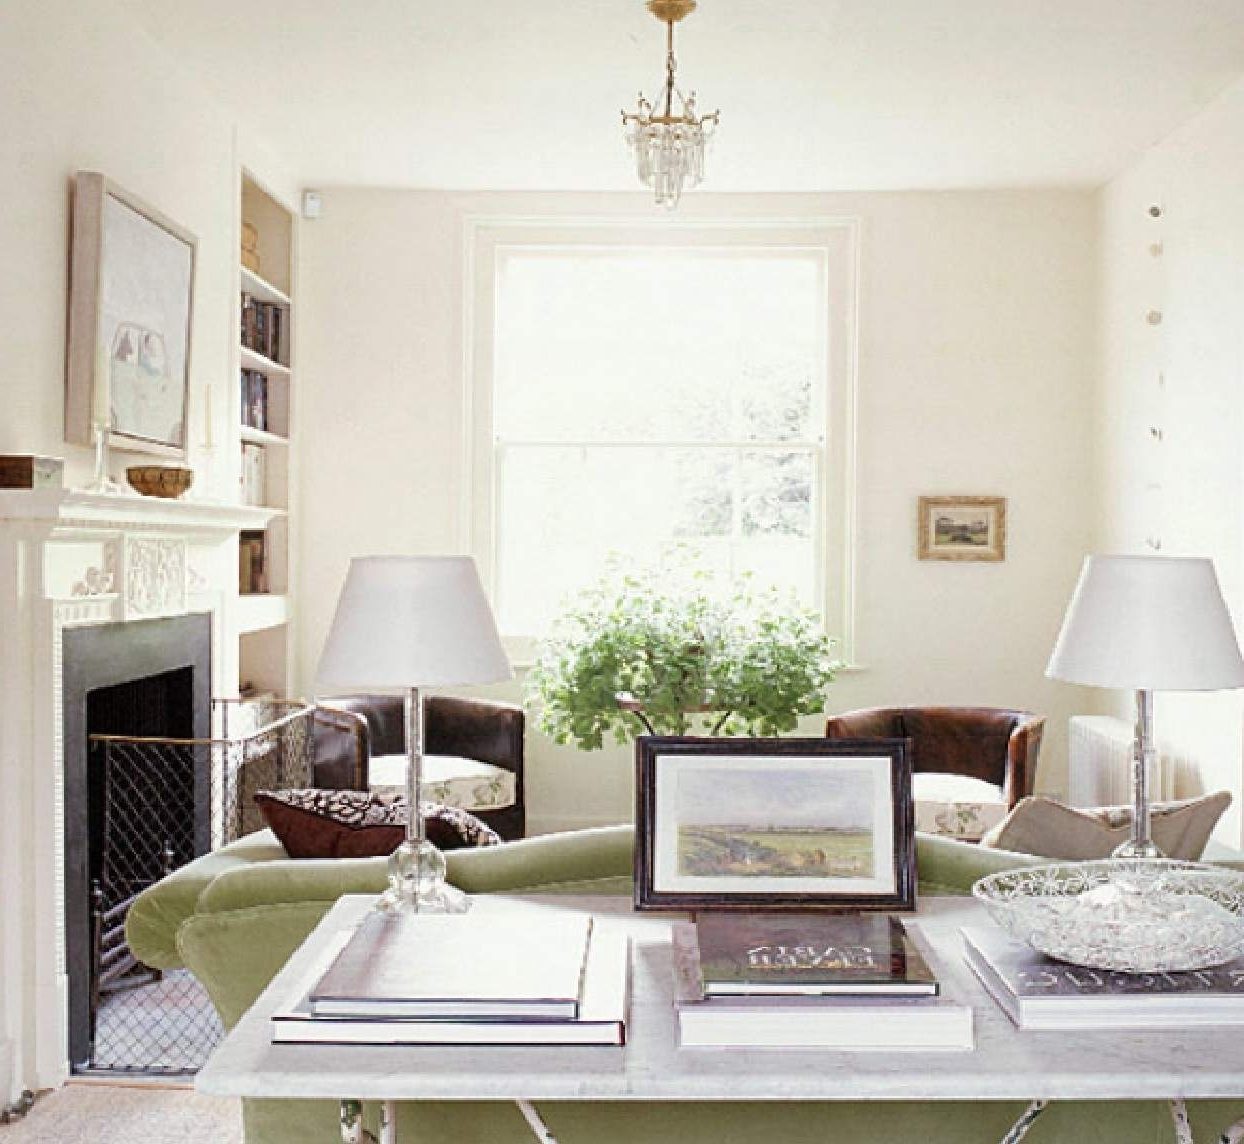 Living Room Table Lamps For Current The Necessity Of Table Lamps For Living Room – Blogbeen (View 3 of 15)